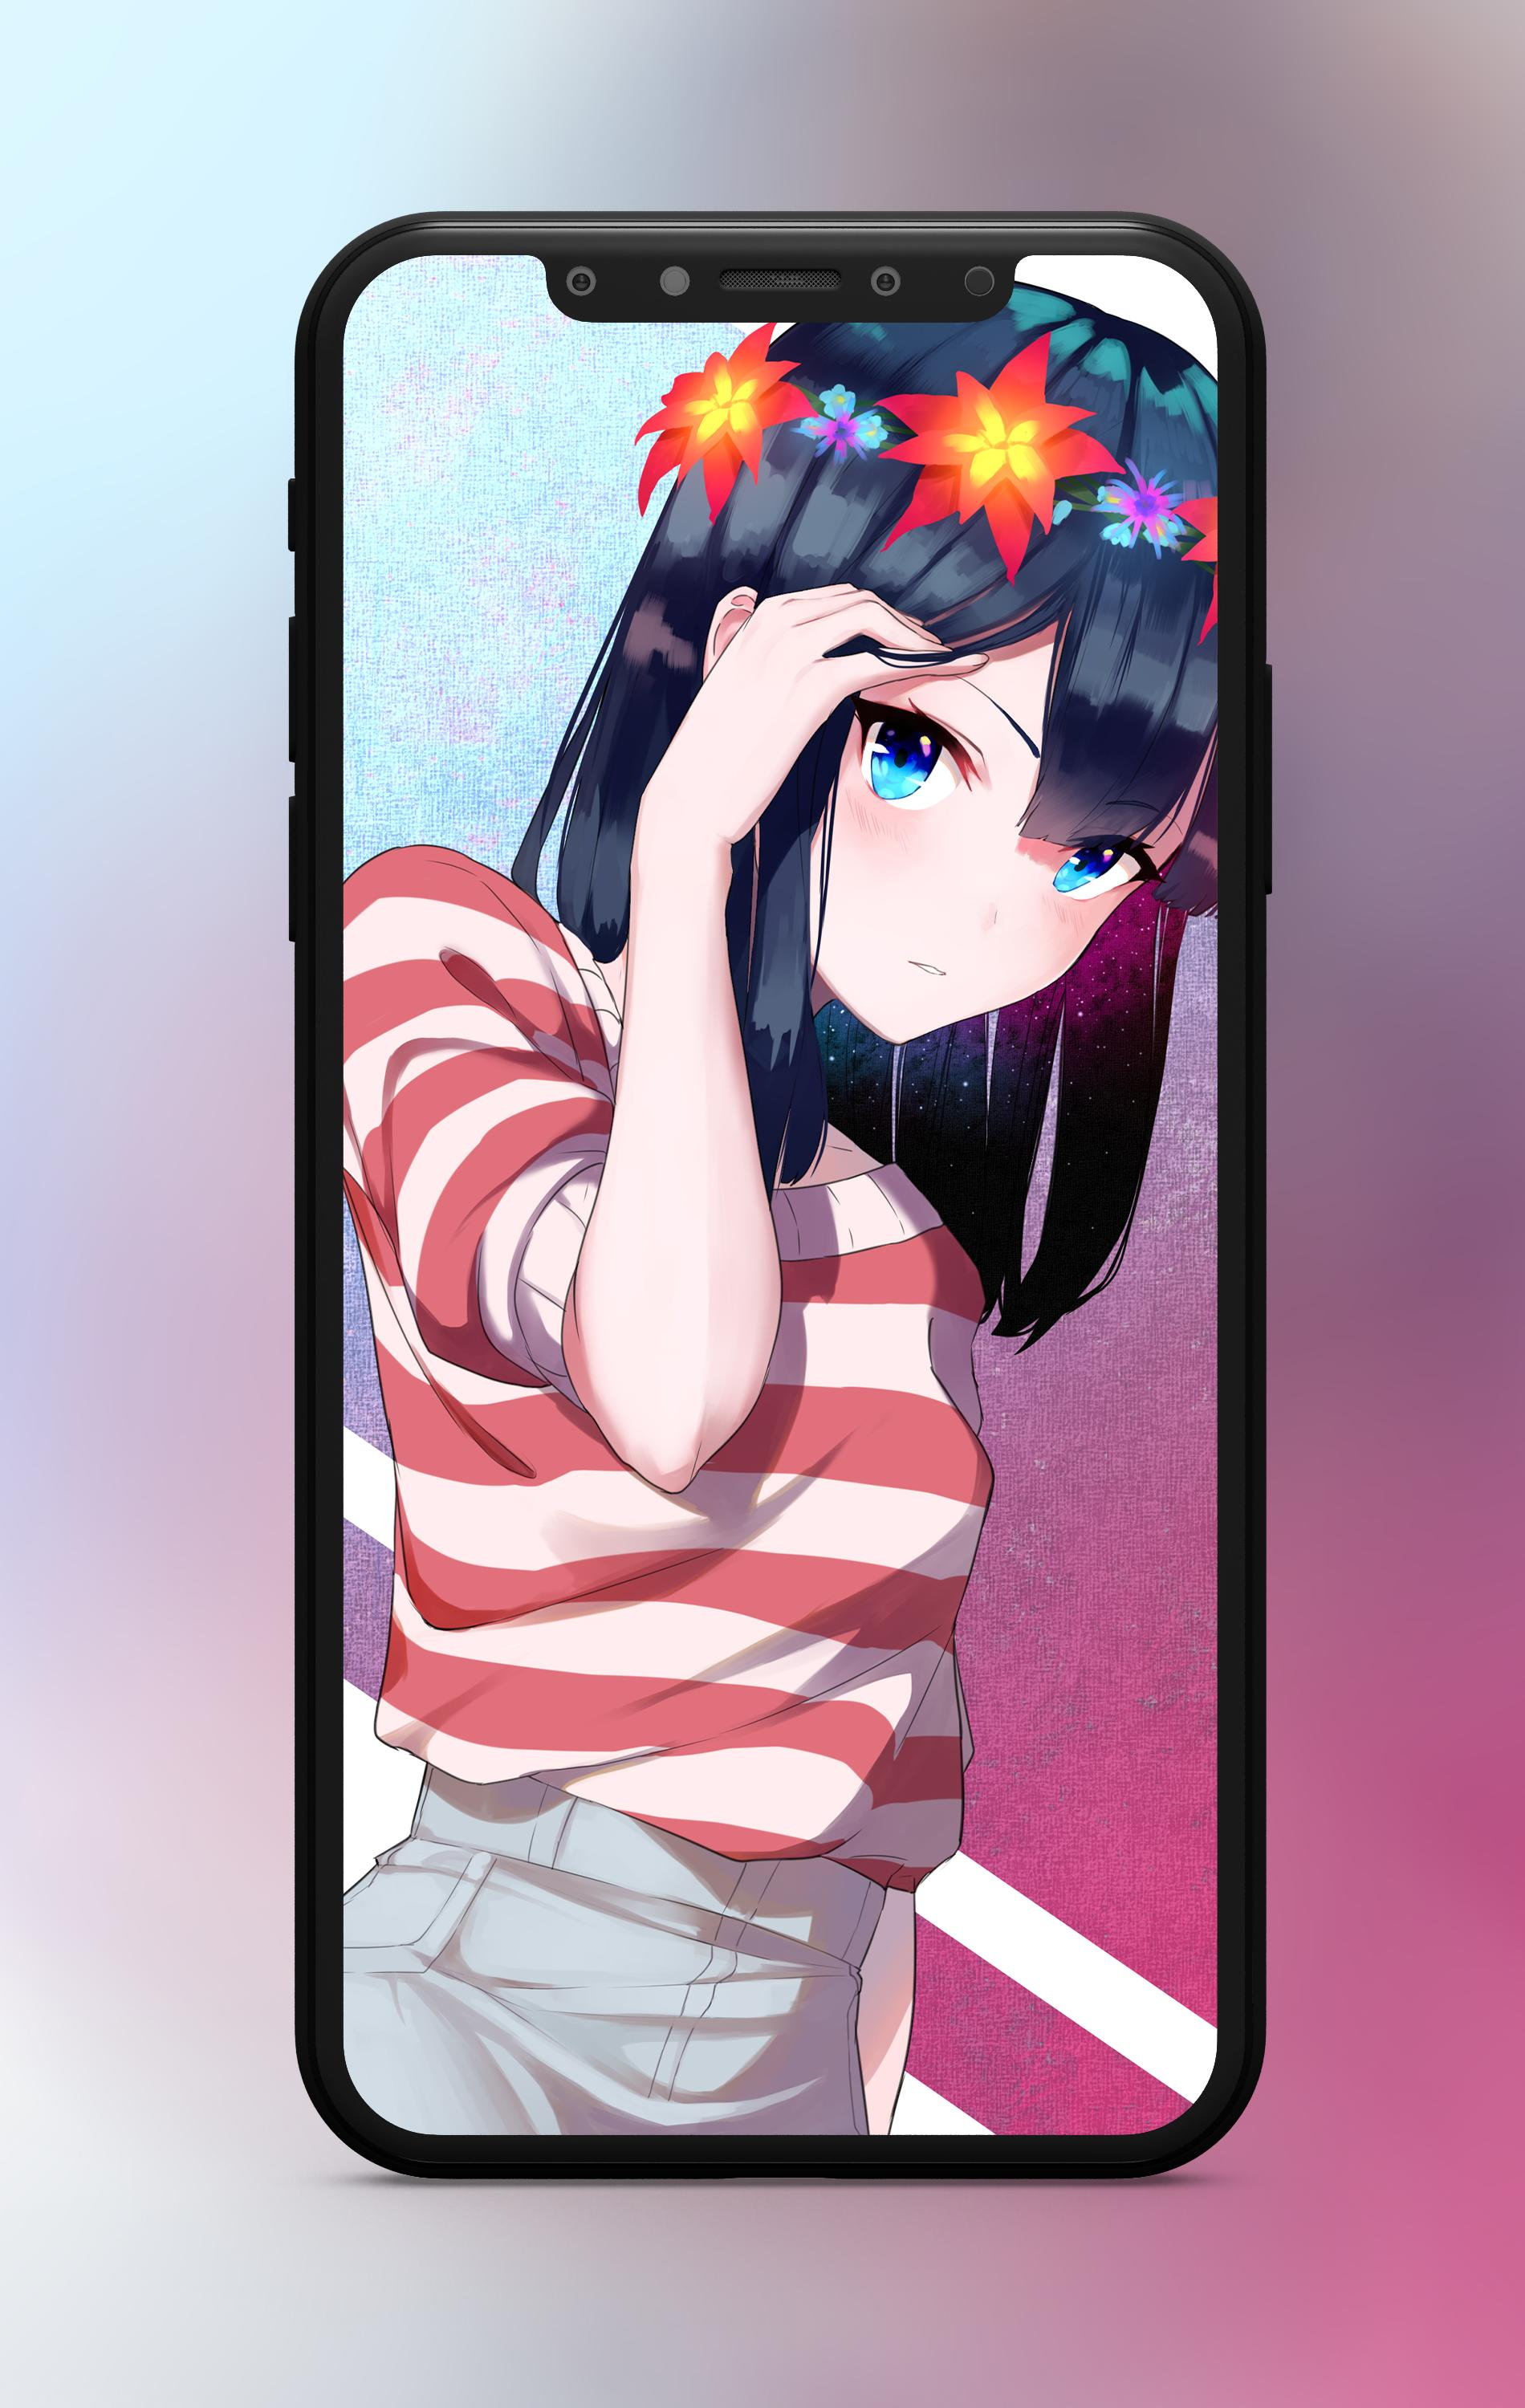 100000 Anime Wallpapers Hd Anime Wallpaper Girl For Android Apk Download